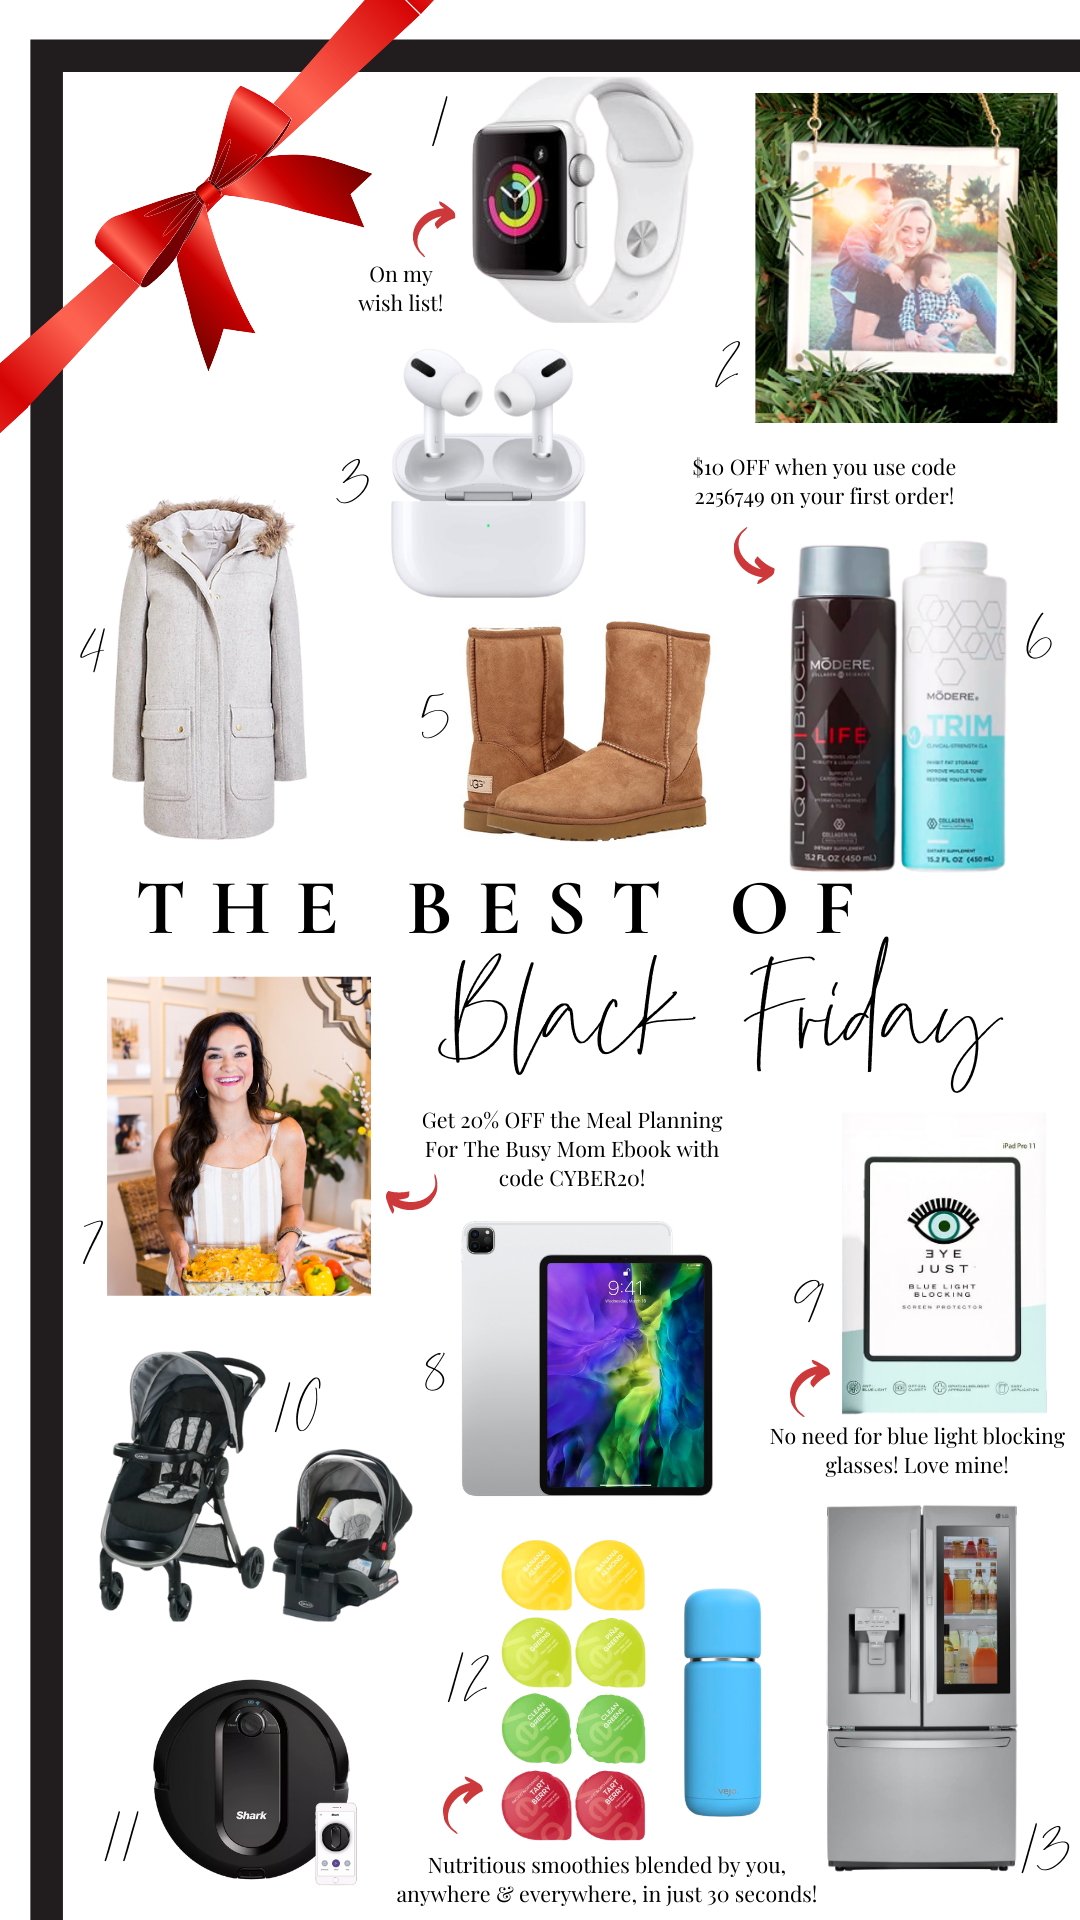 Holiday Sales: Top 13 Best Deals To Shop This Christmas by Alabama Life + Sale blogger, Heather Brown // My Life Well Loved